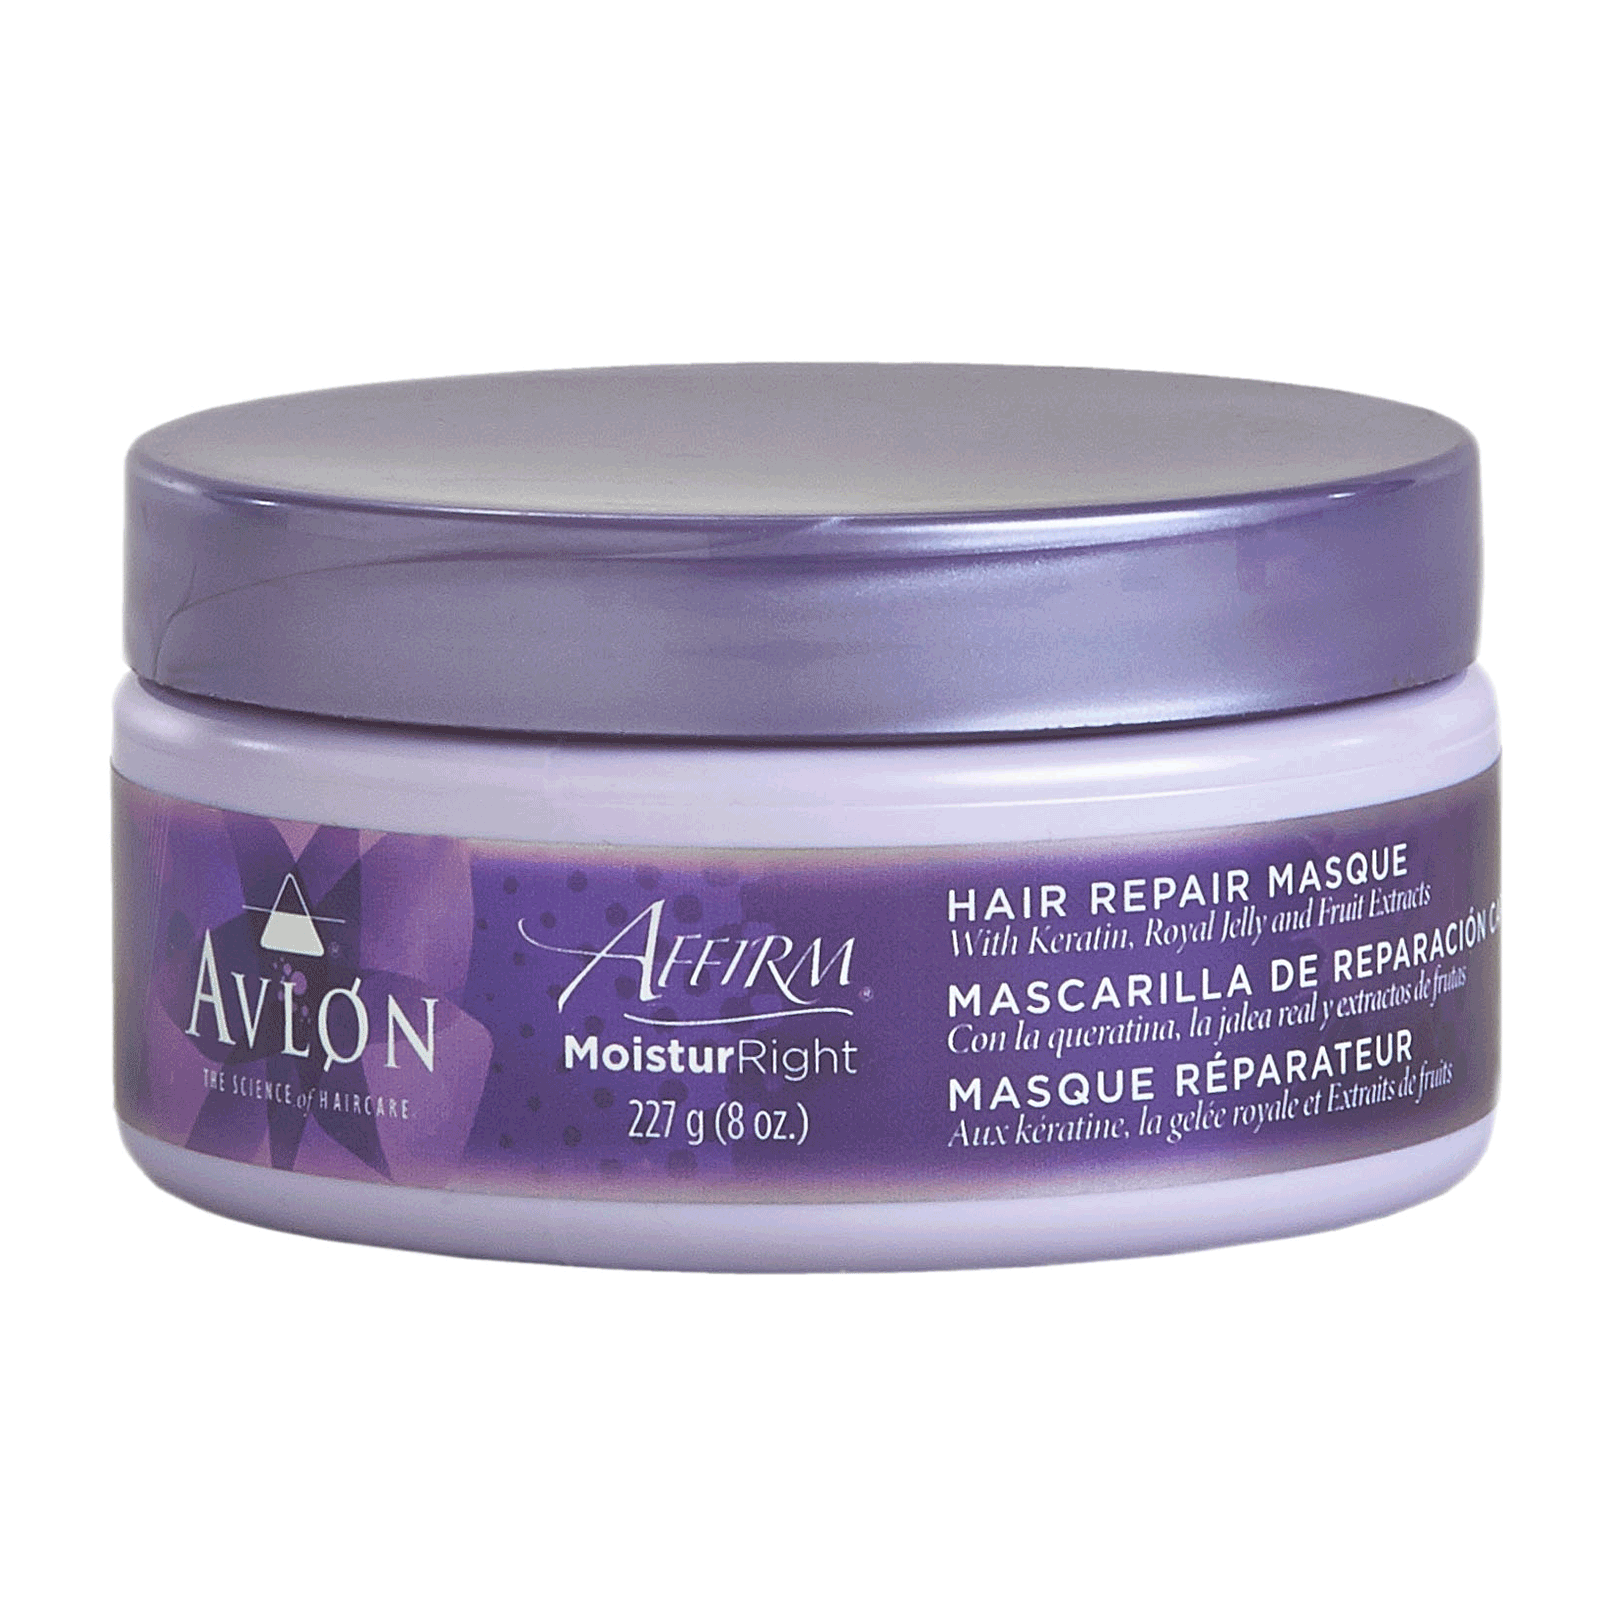 Affirm Moisturright Hair Repair Masque Avlon Cosmoprof